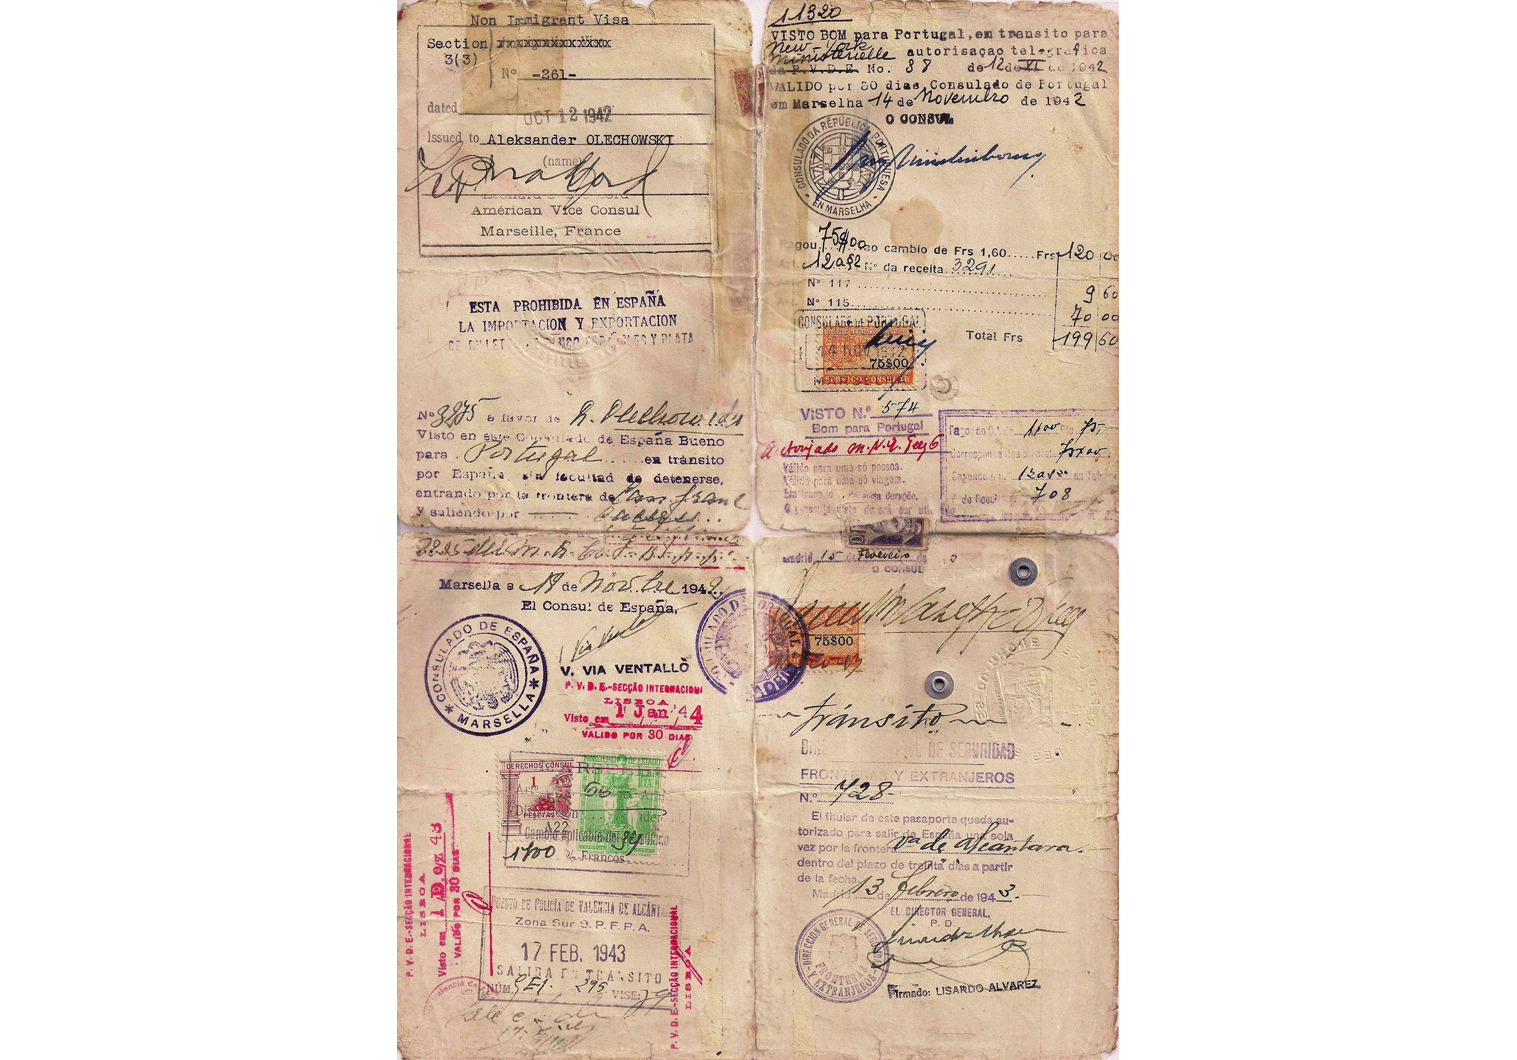 Amazing set of papers used to escape France